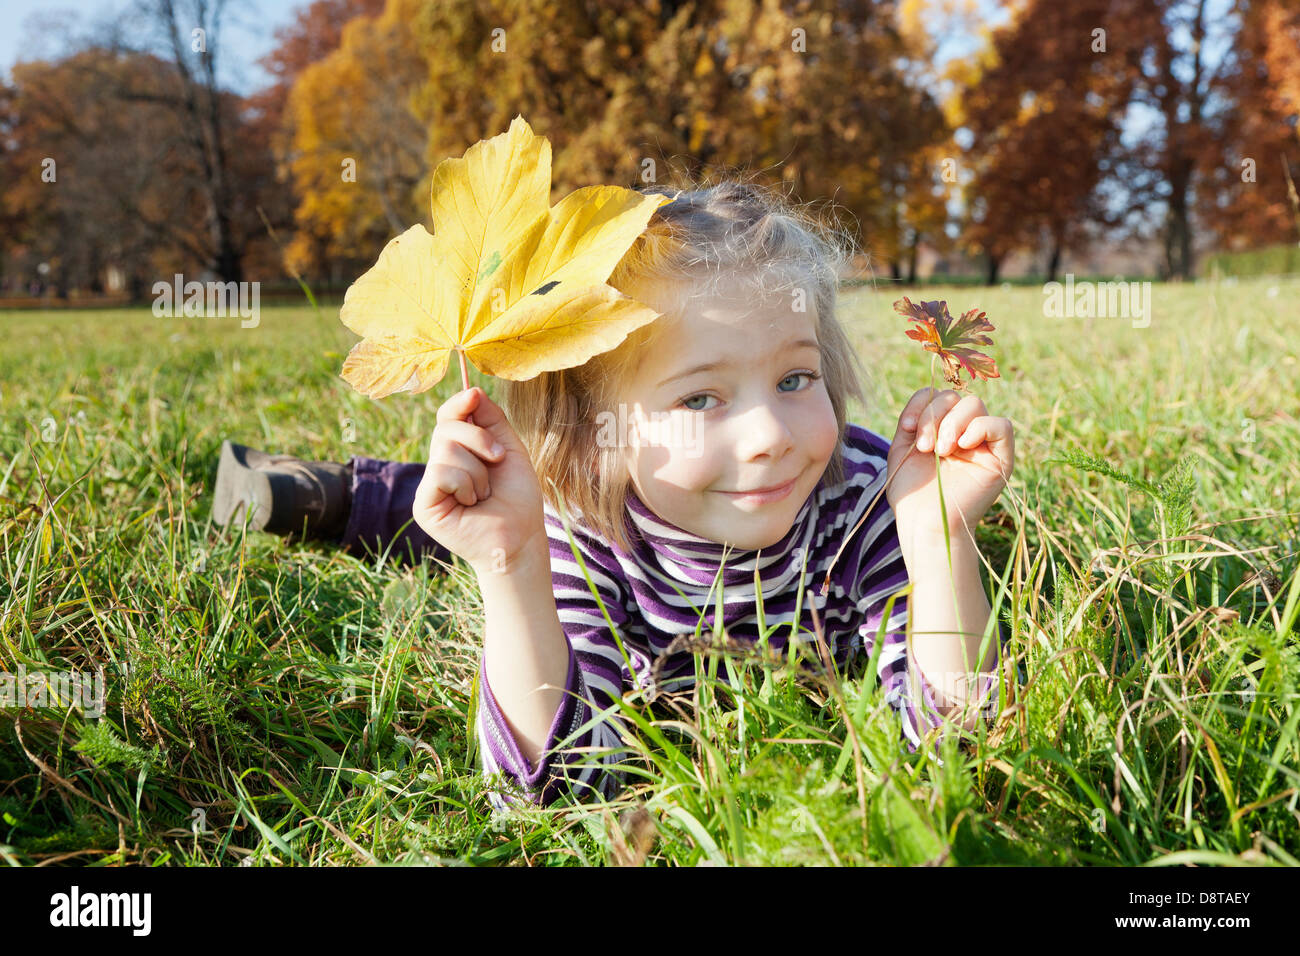 Six year-old girl with an autumn leave in one hand and a flower in the other hand - Stock Image